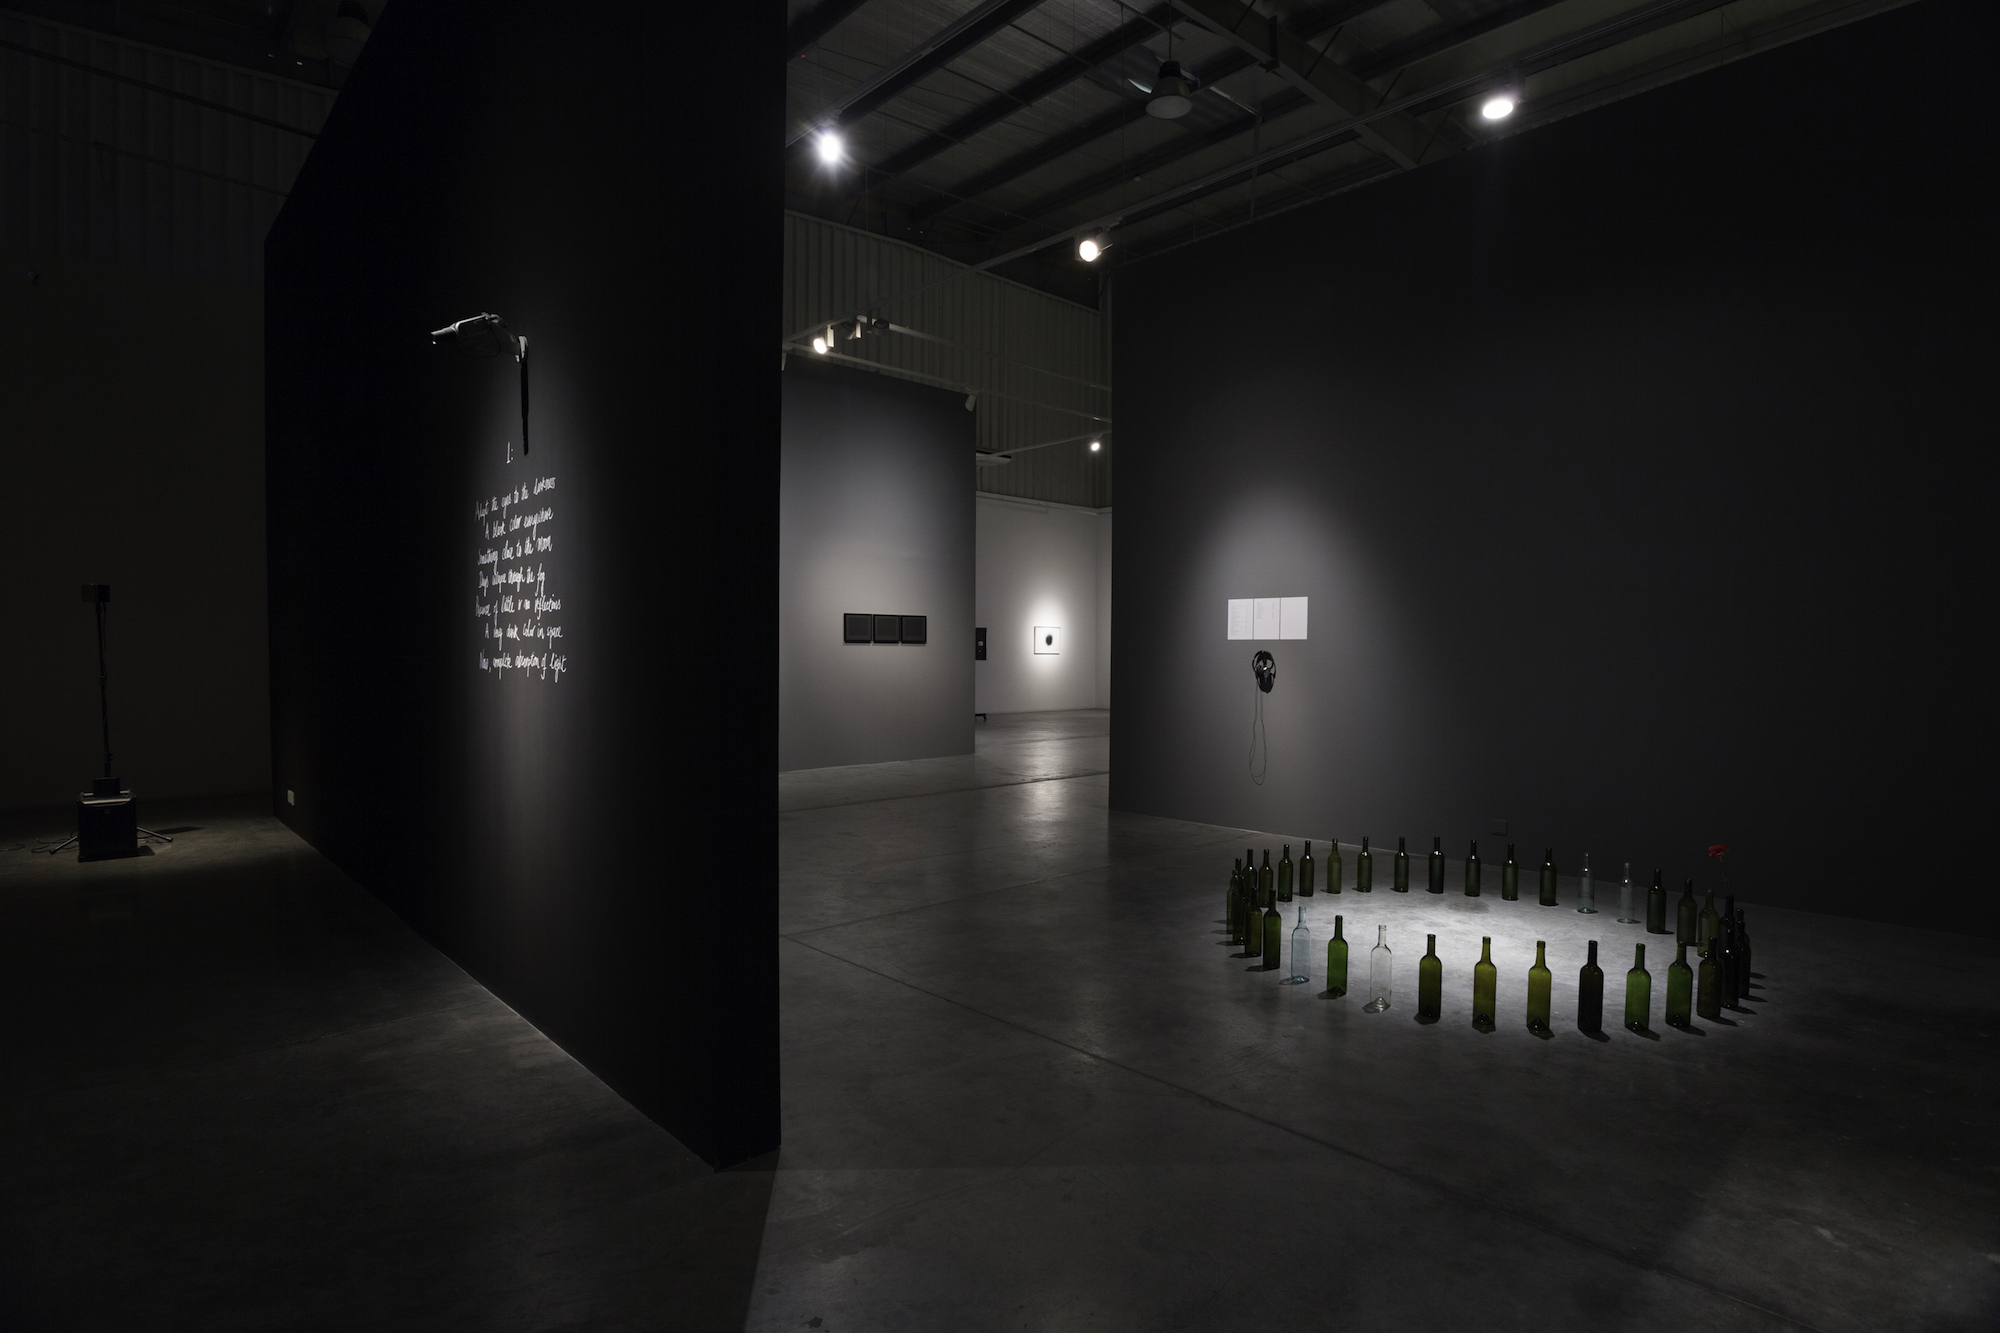 Installation view / But even if I cannot see the sun